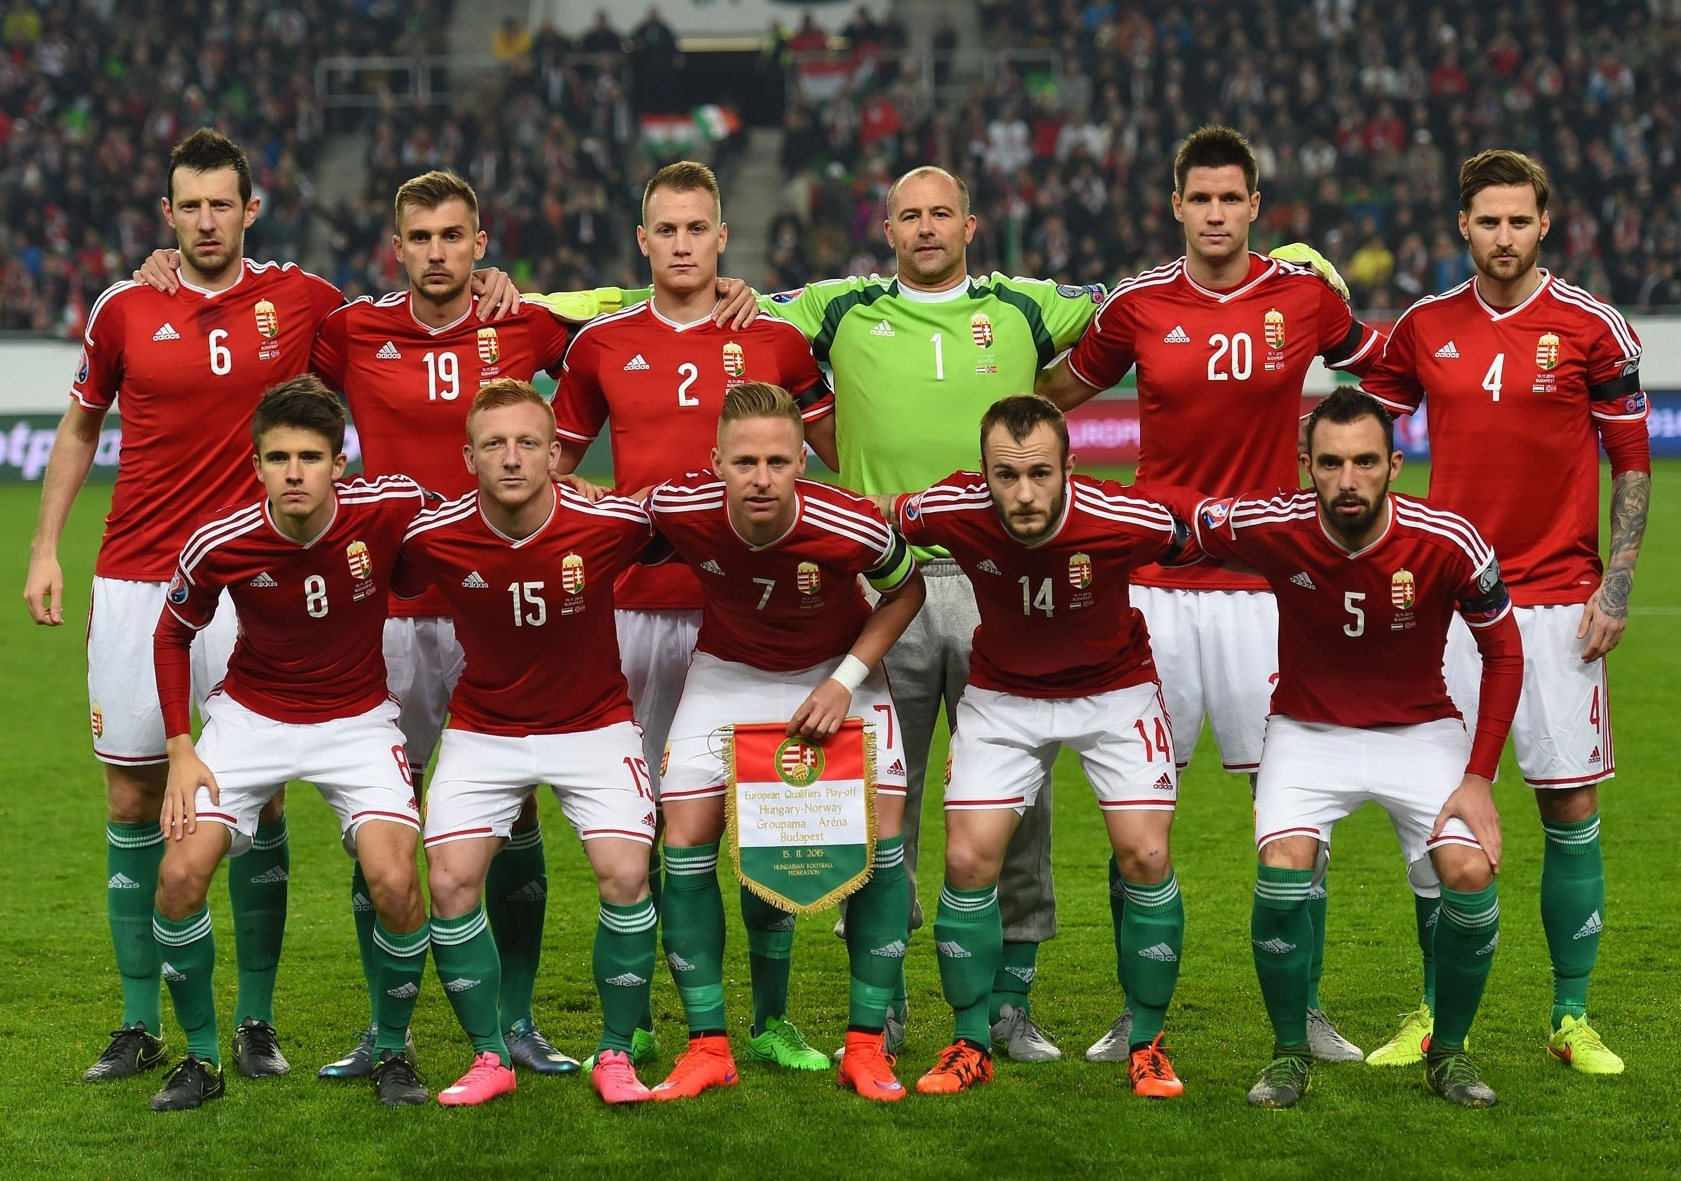 Hungary-14-15-adidas-home-kit-red-white-green-line-up.jpg